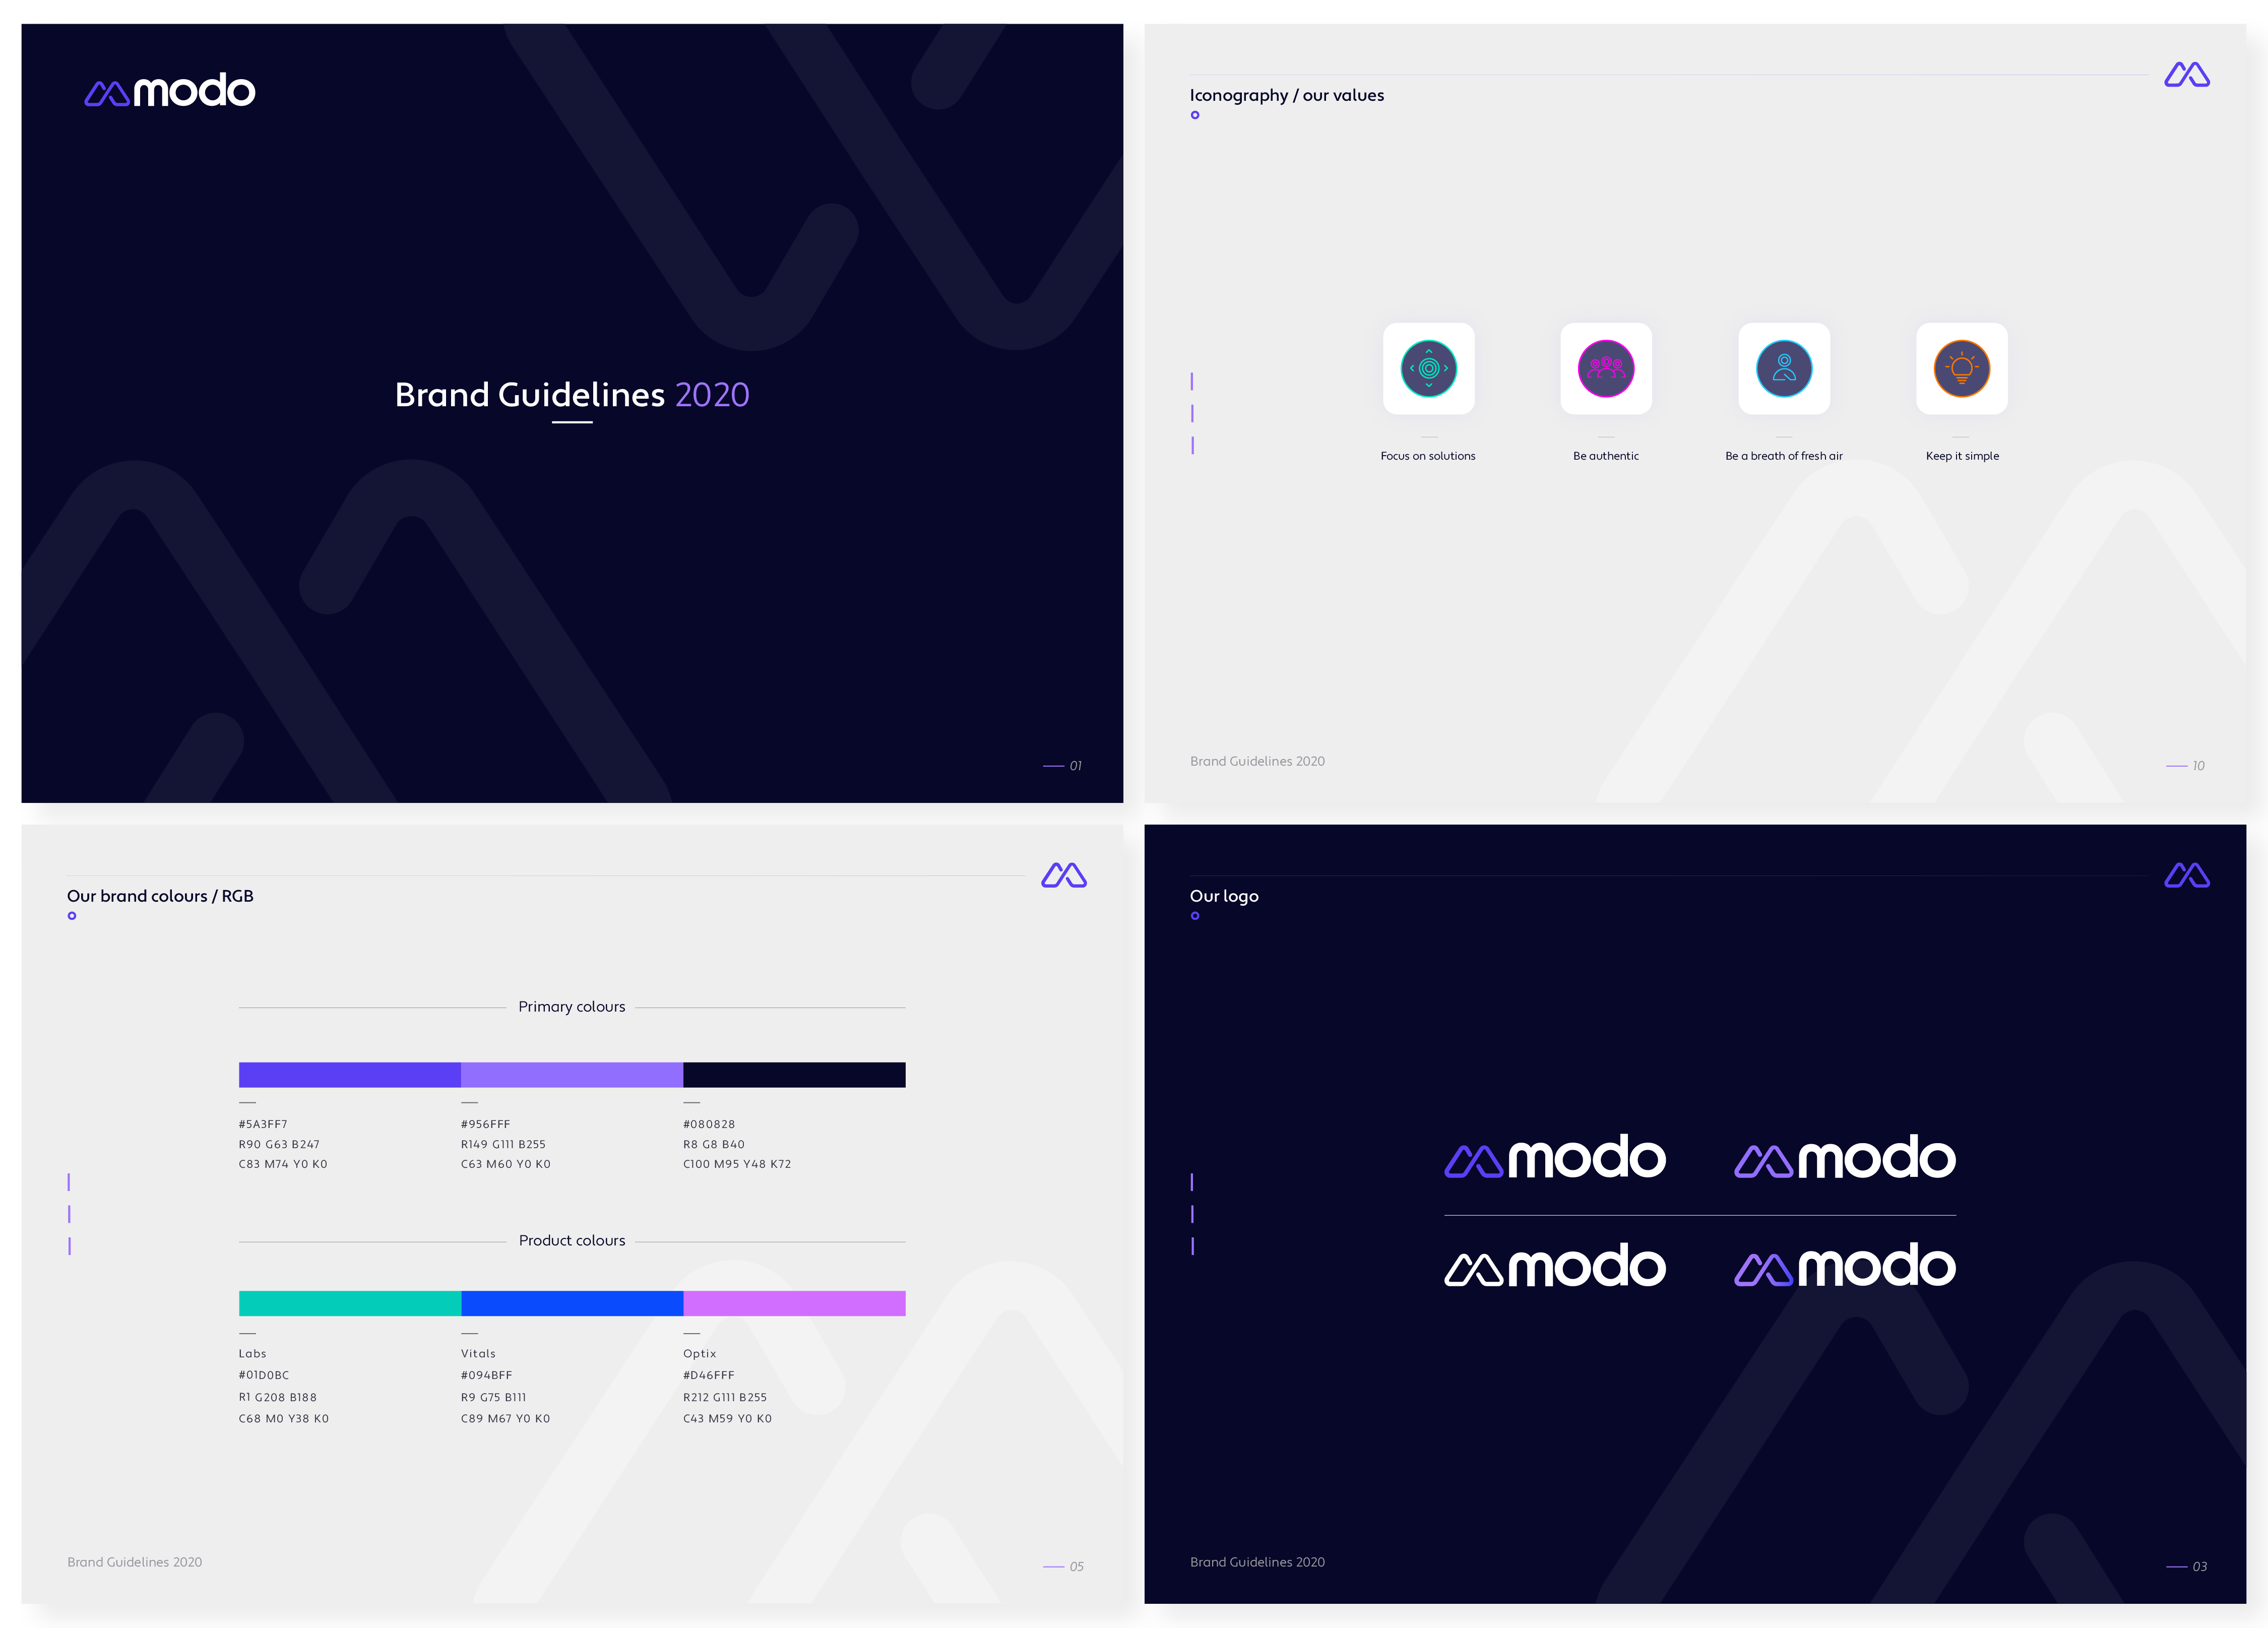 modo-brand-guidelines